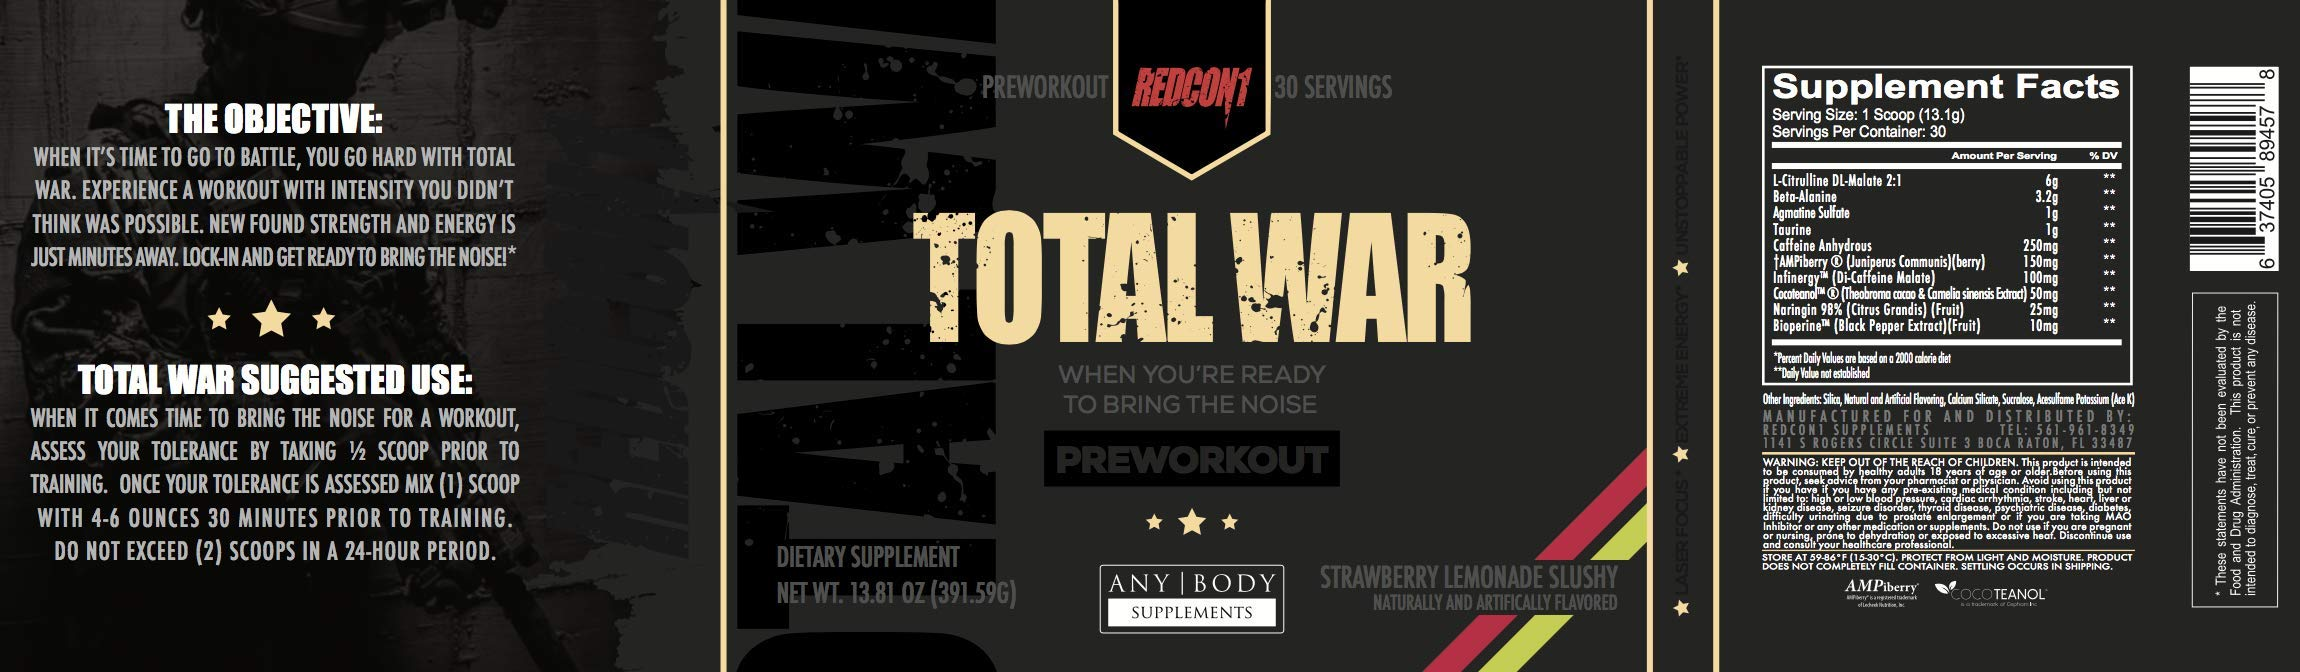 Total War - Pre Workout - 30 Servings - Newly Formulated (Strawberry Lemonade Slushy)   Limited Edition Any Body Supplements Exclusive by Redcon1 (Image #6)